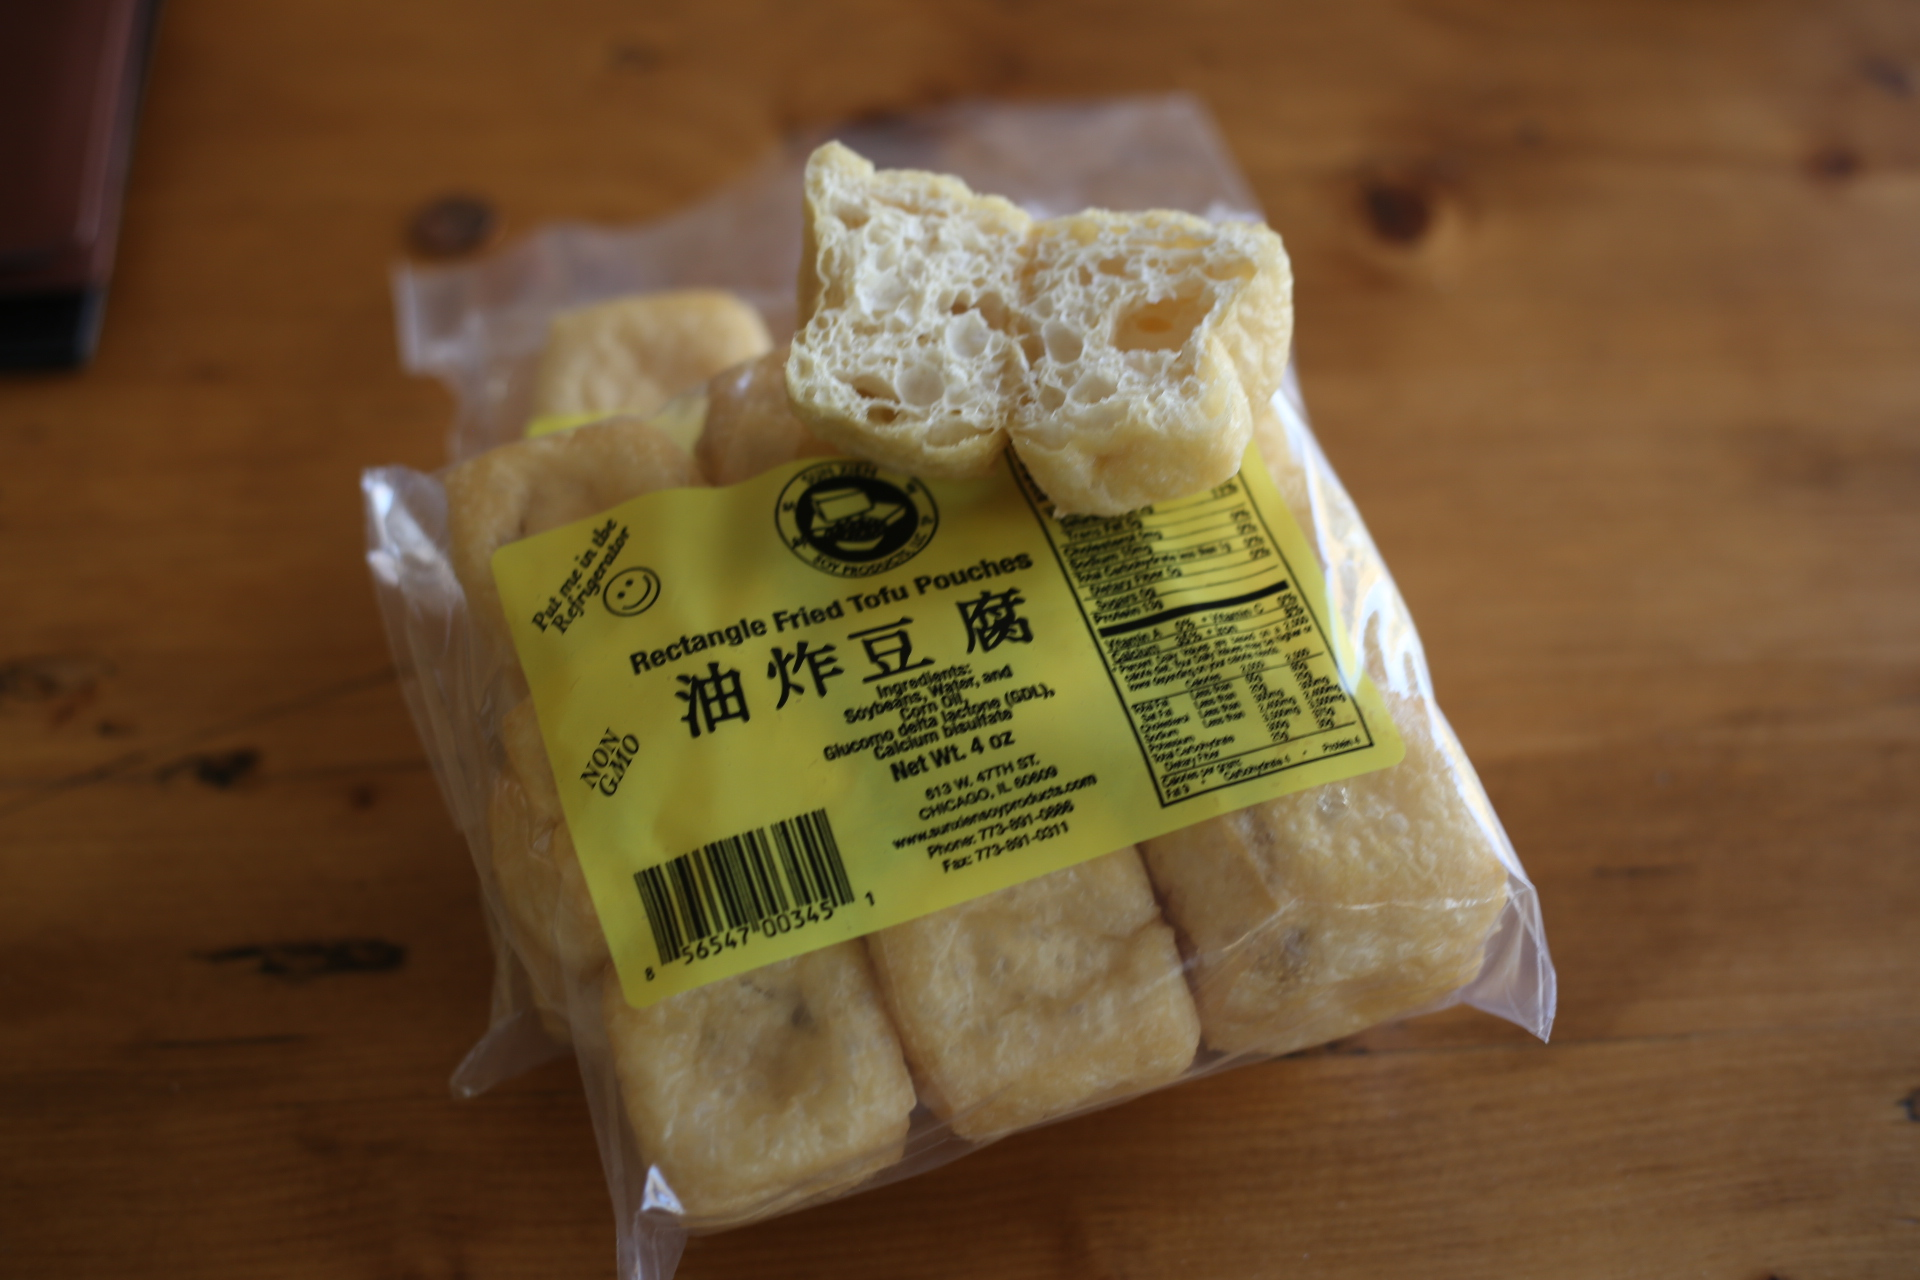 Add fried tofu pouches which soaks up the delicious broth (available at Tai Nam Market). Add cooked rice noodles as well.